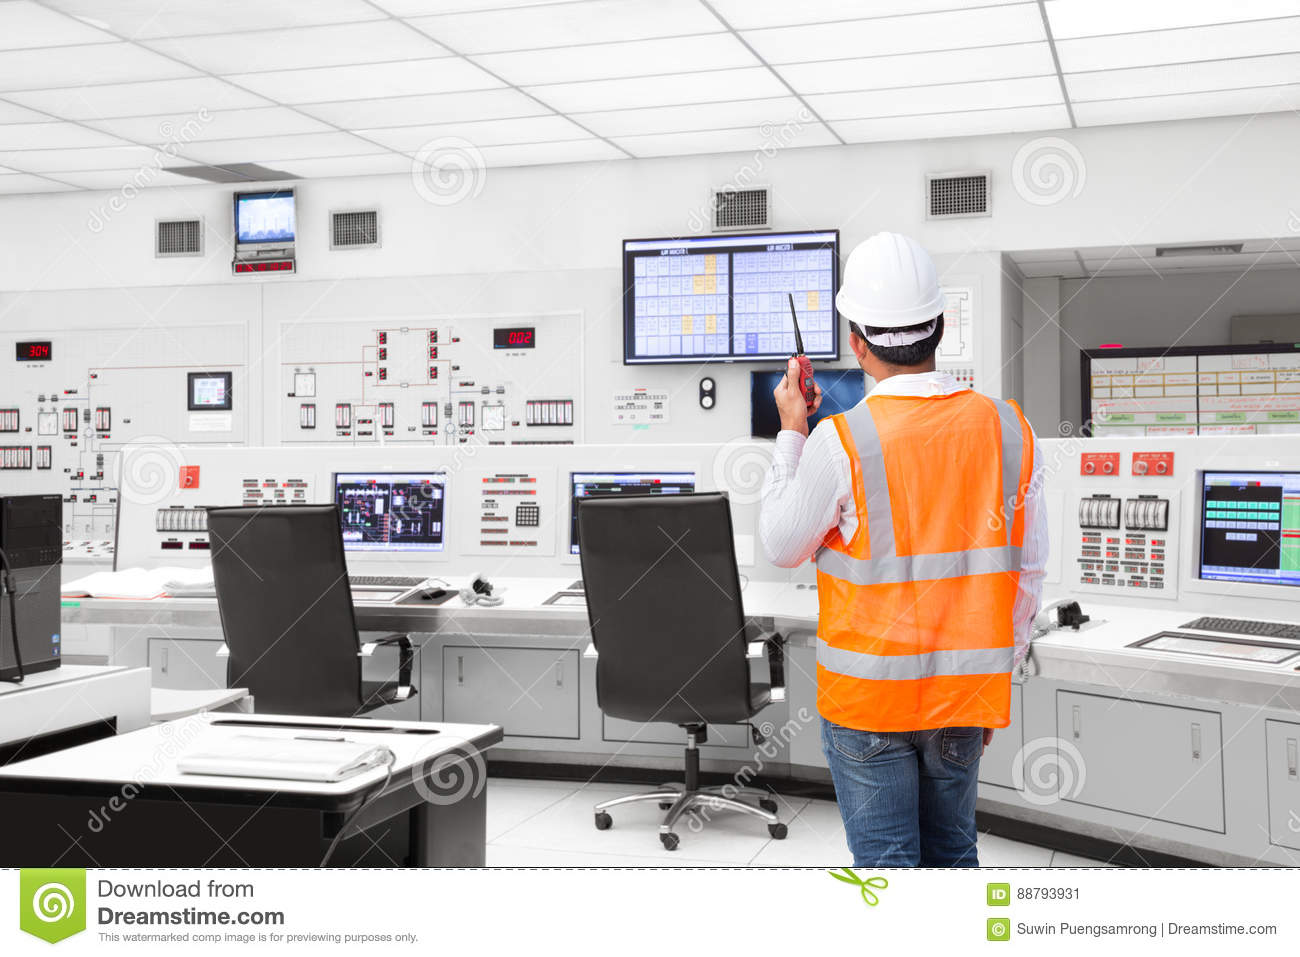 Electrical engineer working at control room of thermal power plant